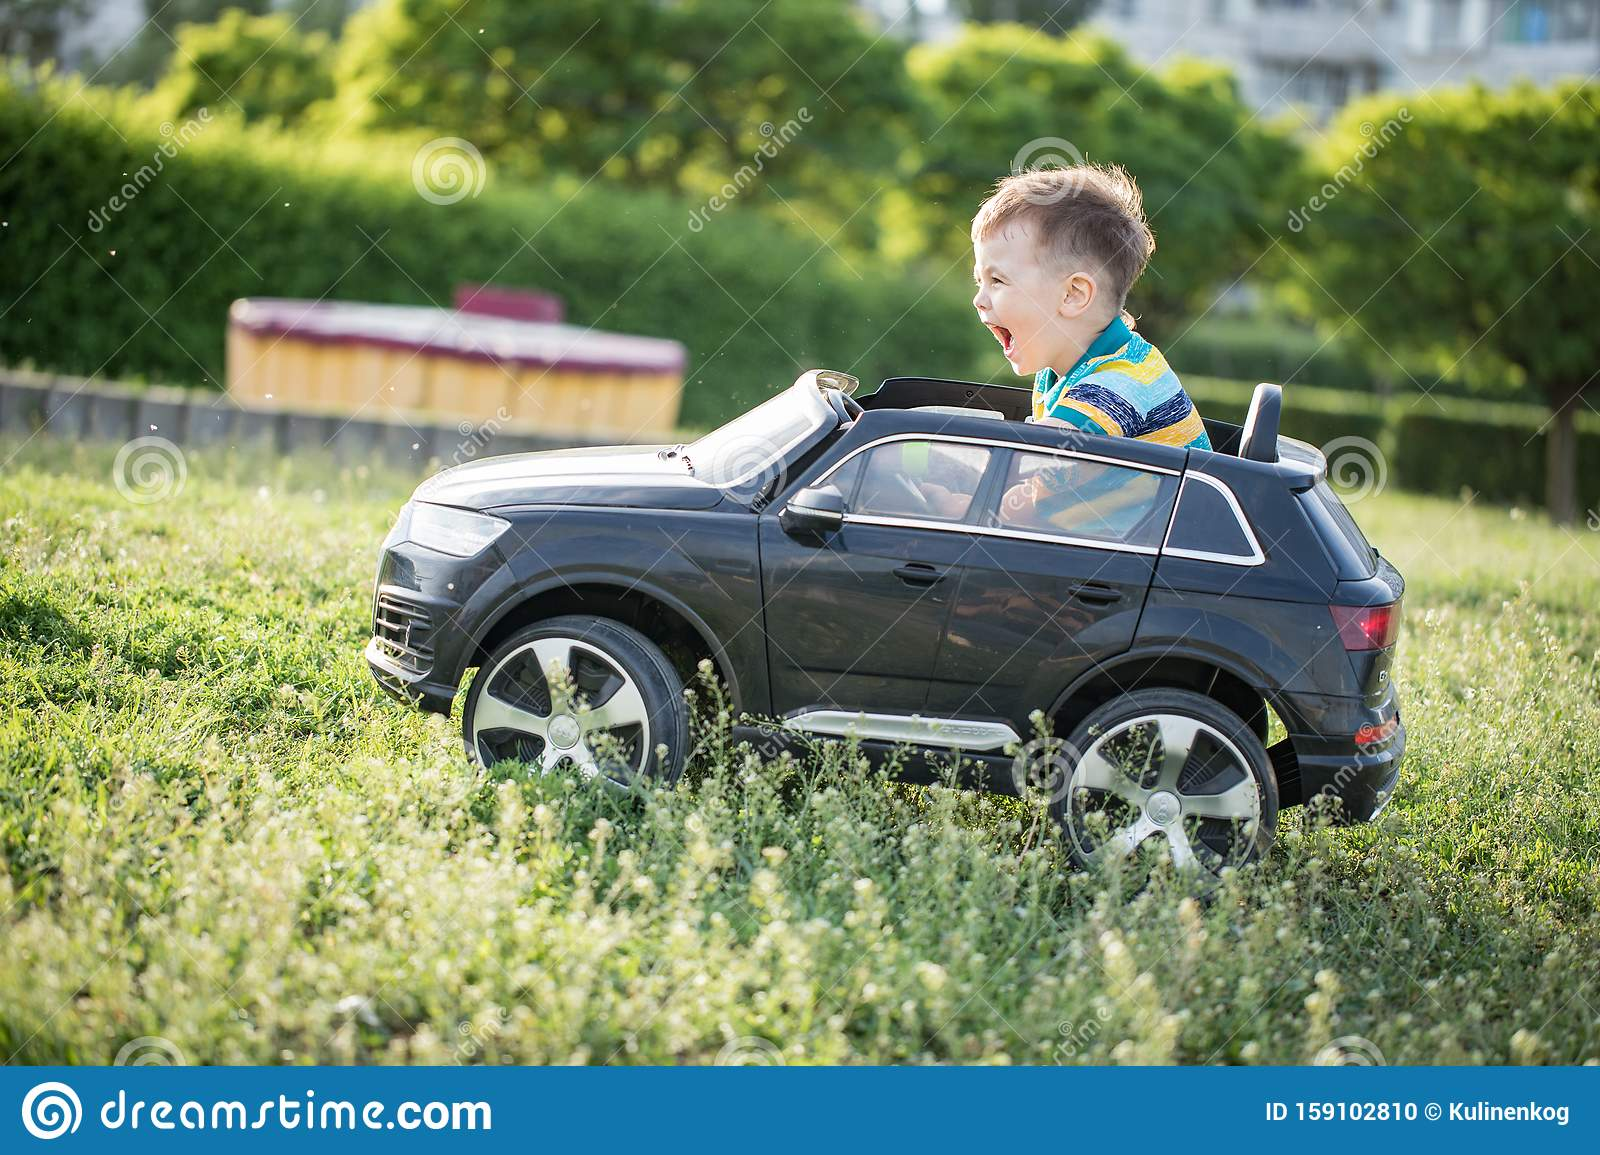 Cute Little Boy In Riding A Black Electric Car In The Park Stock Photo Image Of Funny Activity 159102810